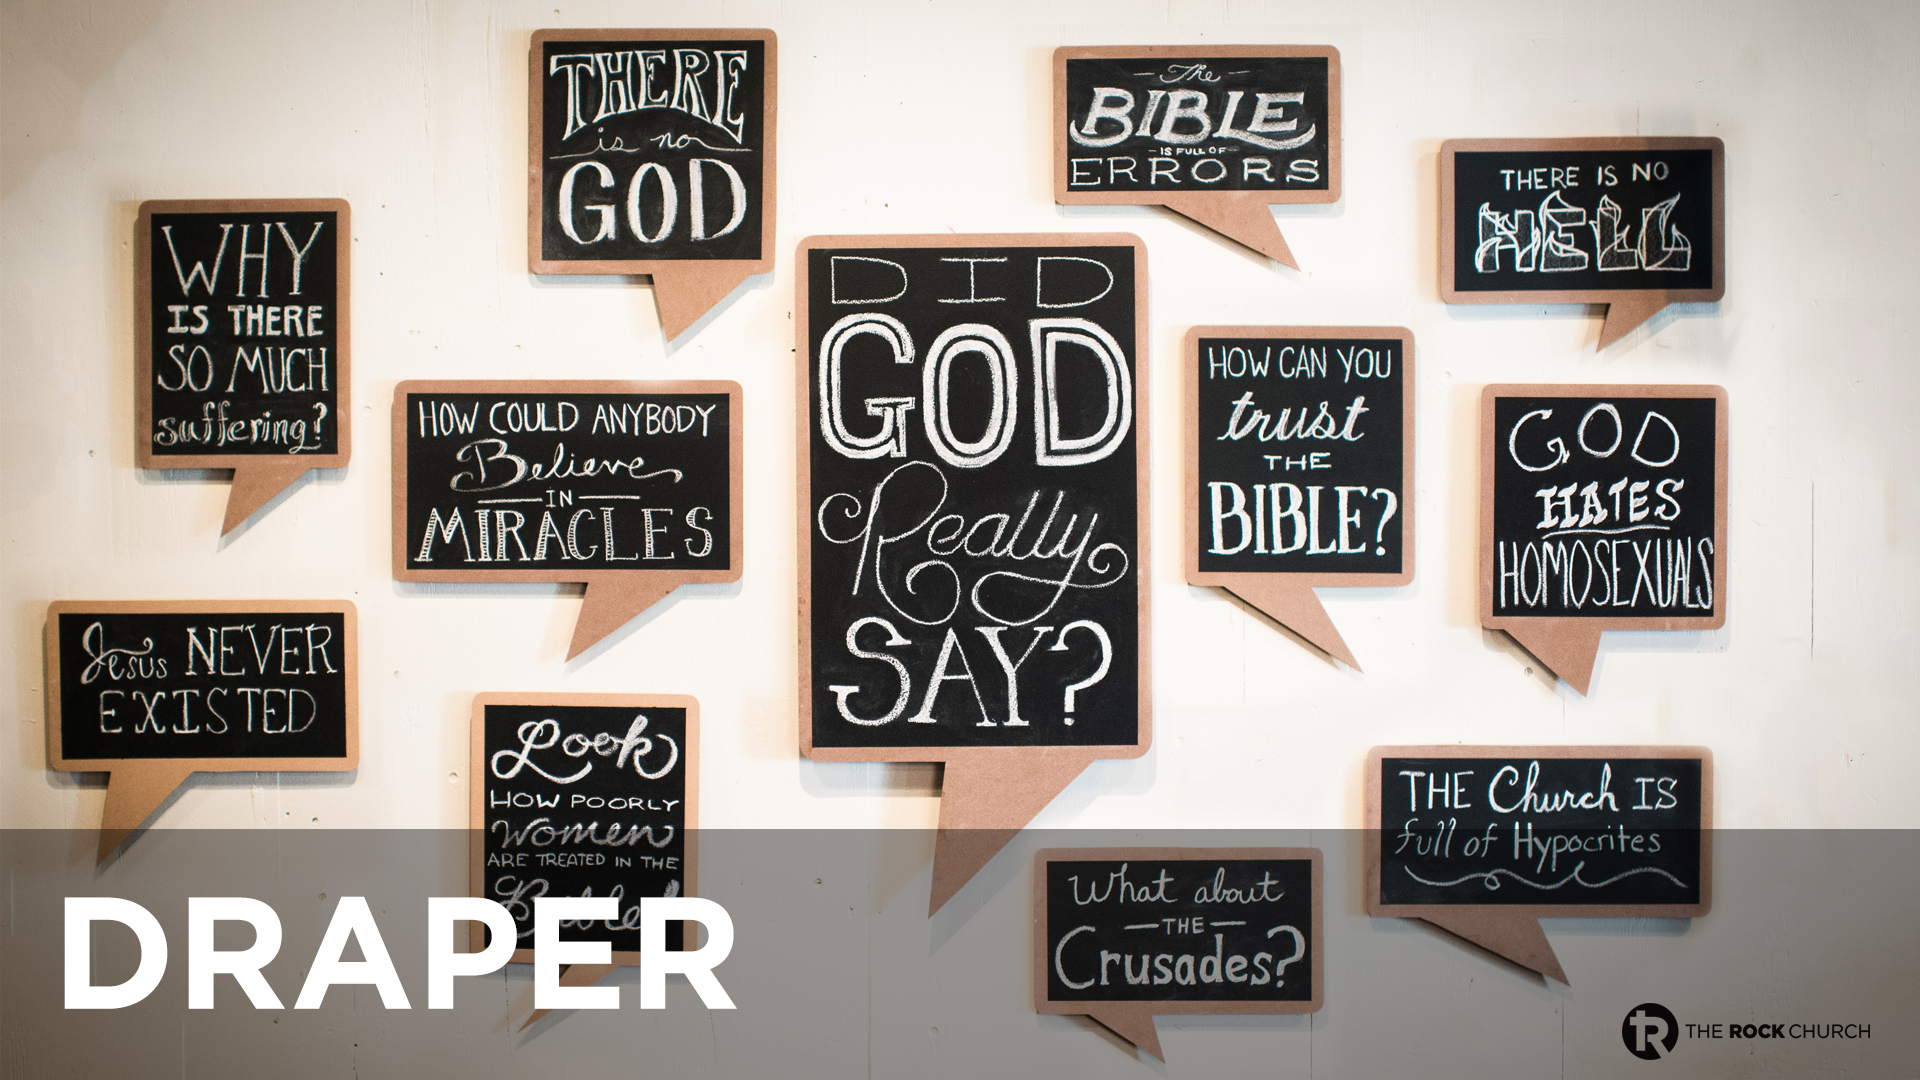 Did God Really Say?: Draper